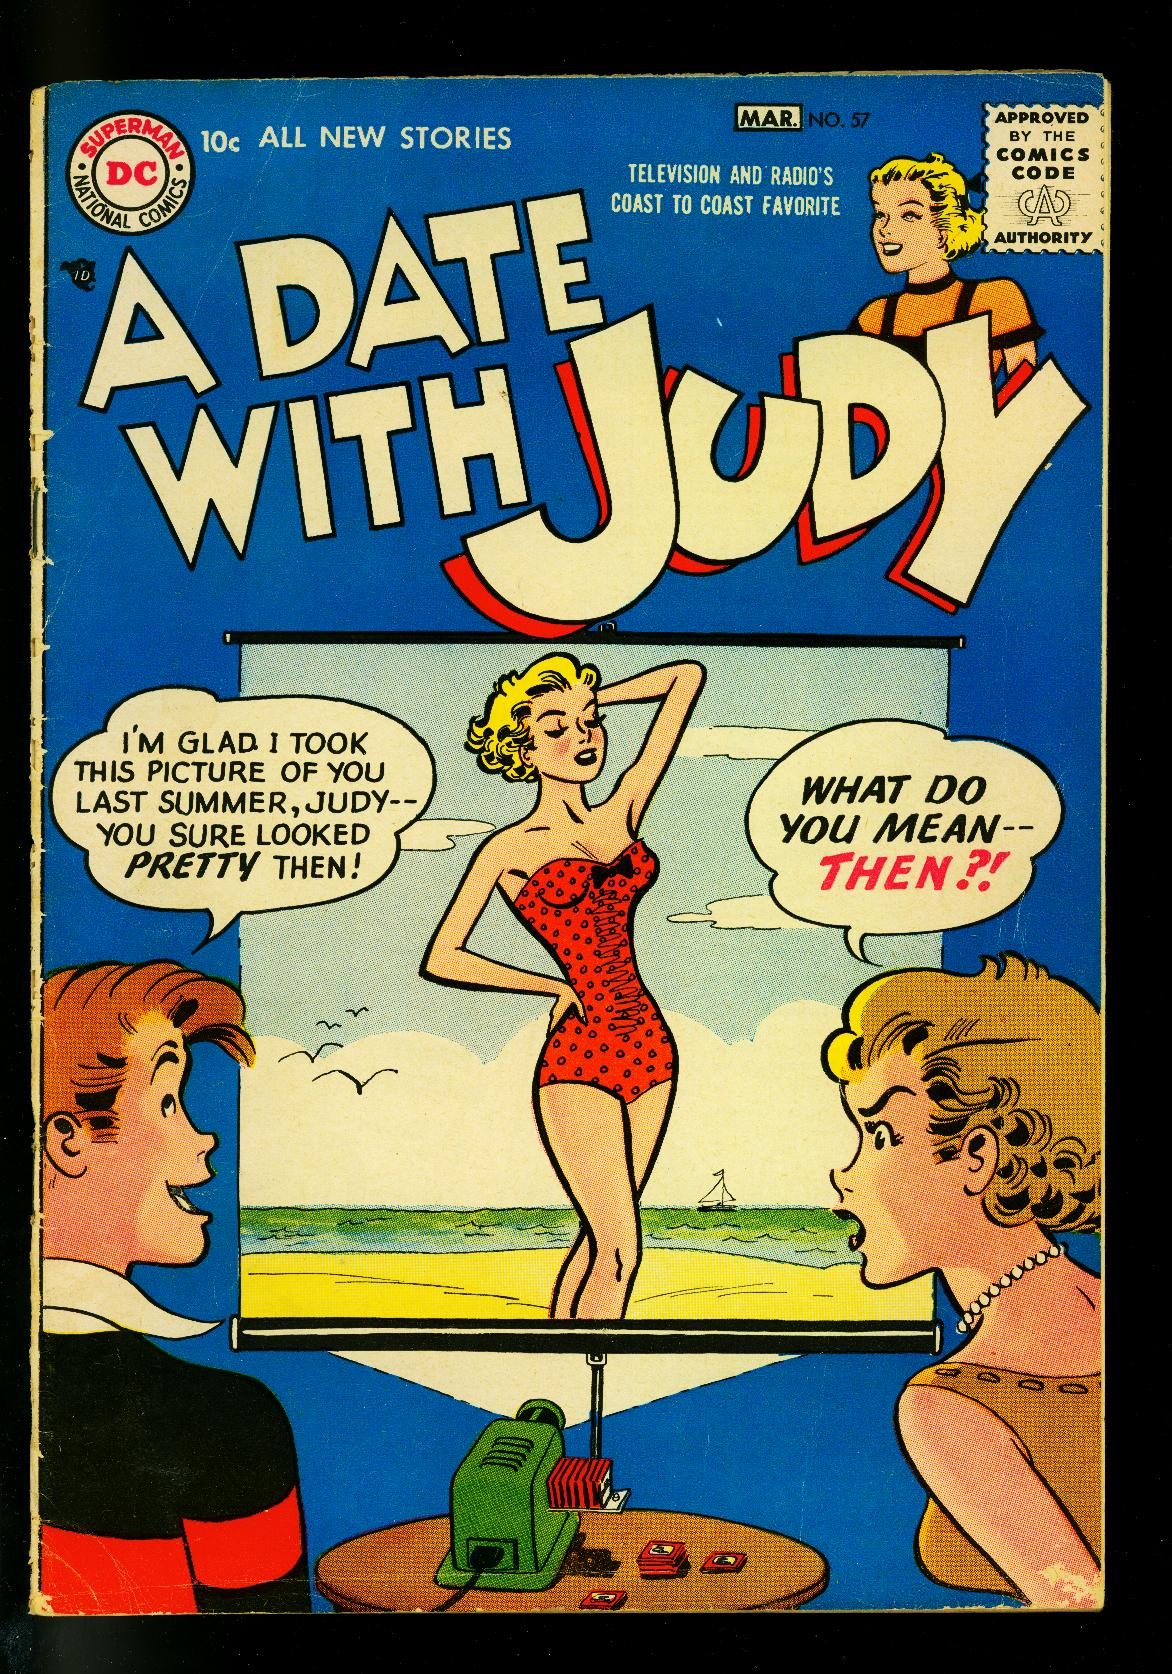 Date_with_Judy_#57_1957-_Swimsuit_slide_projector_cover-_DC_Humor-_G_VG___[Good]_[Hardcover]